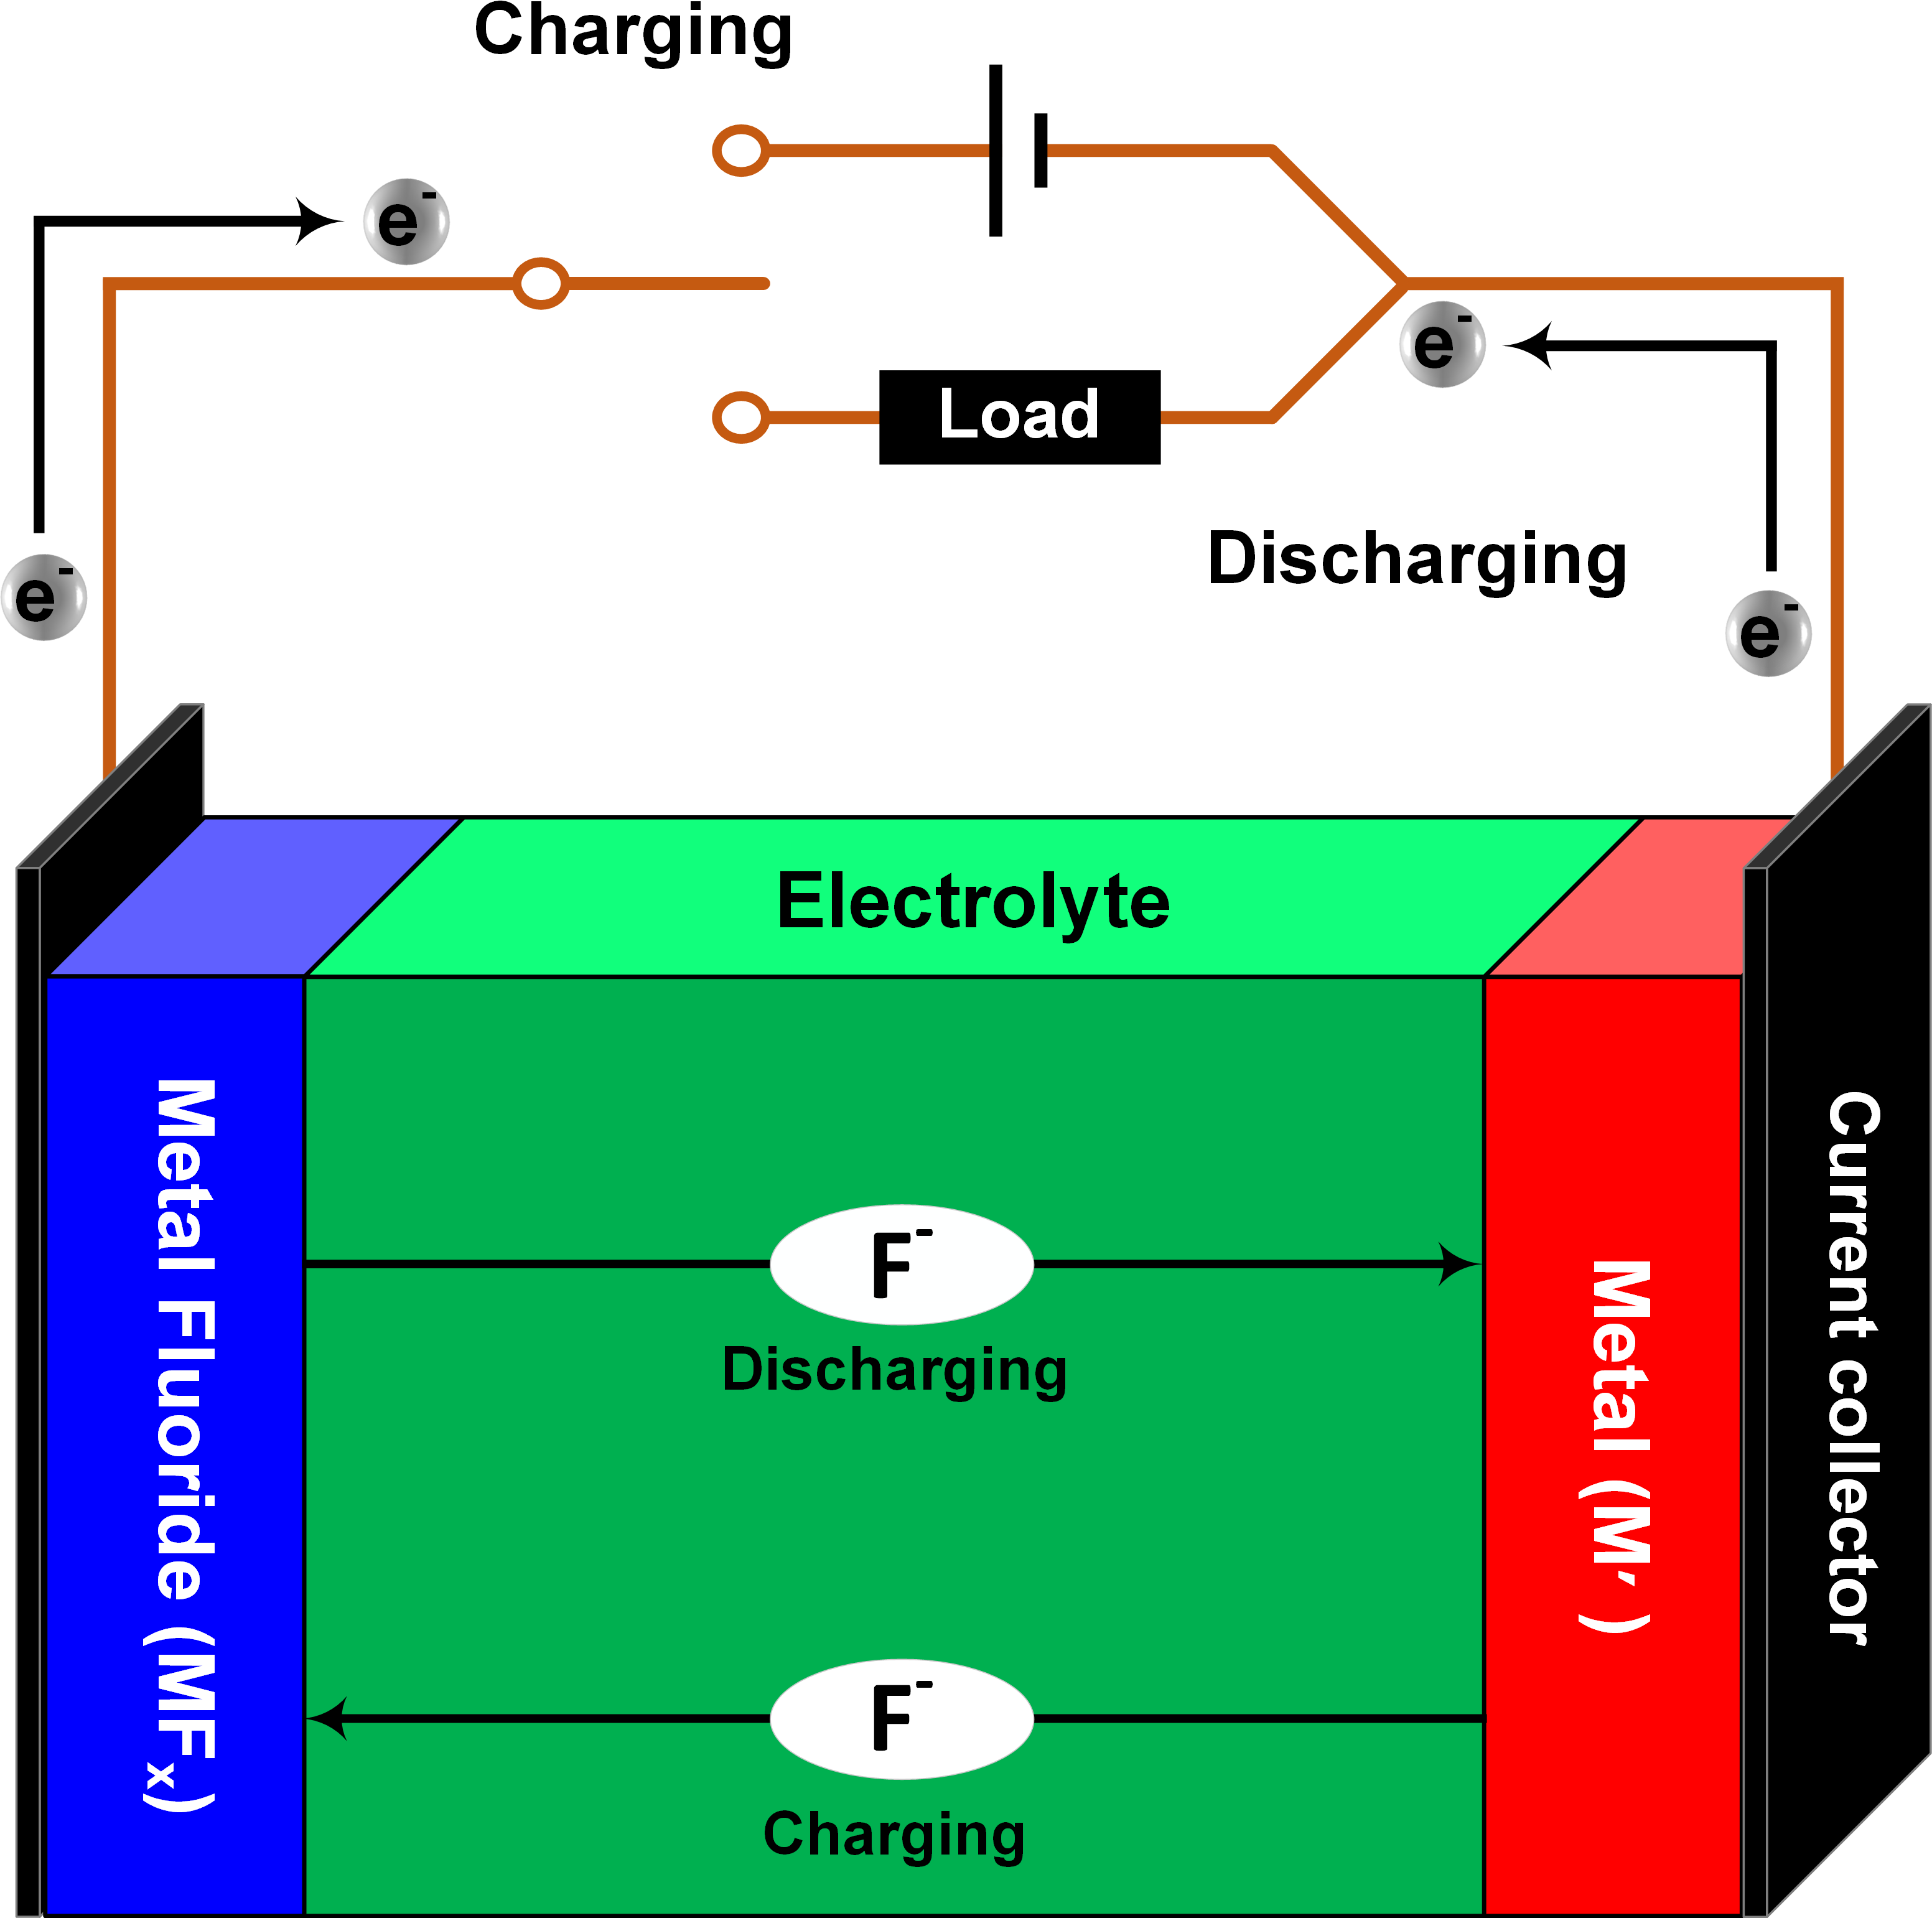 Schematic Fluoride Ion Battery